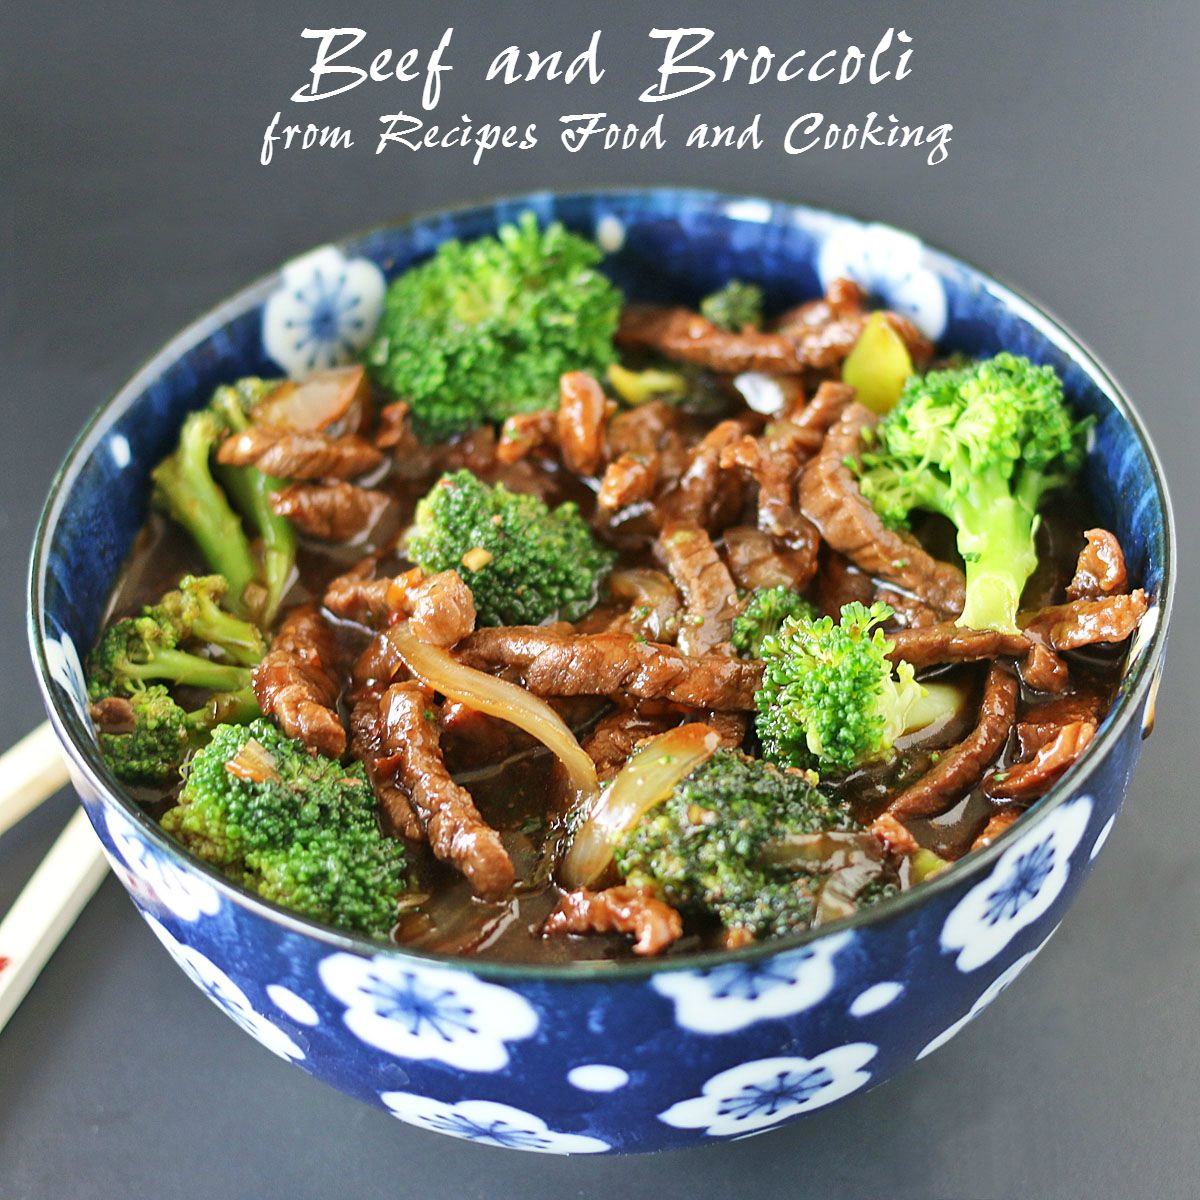 Beef and broccoli recipes food and cooking beef and broccoli forumfinder Image collections